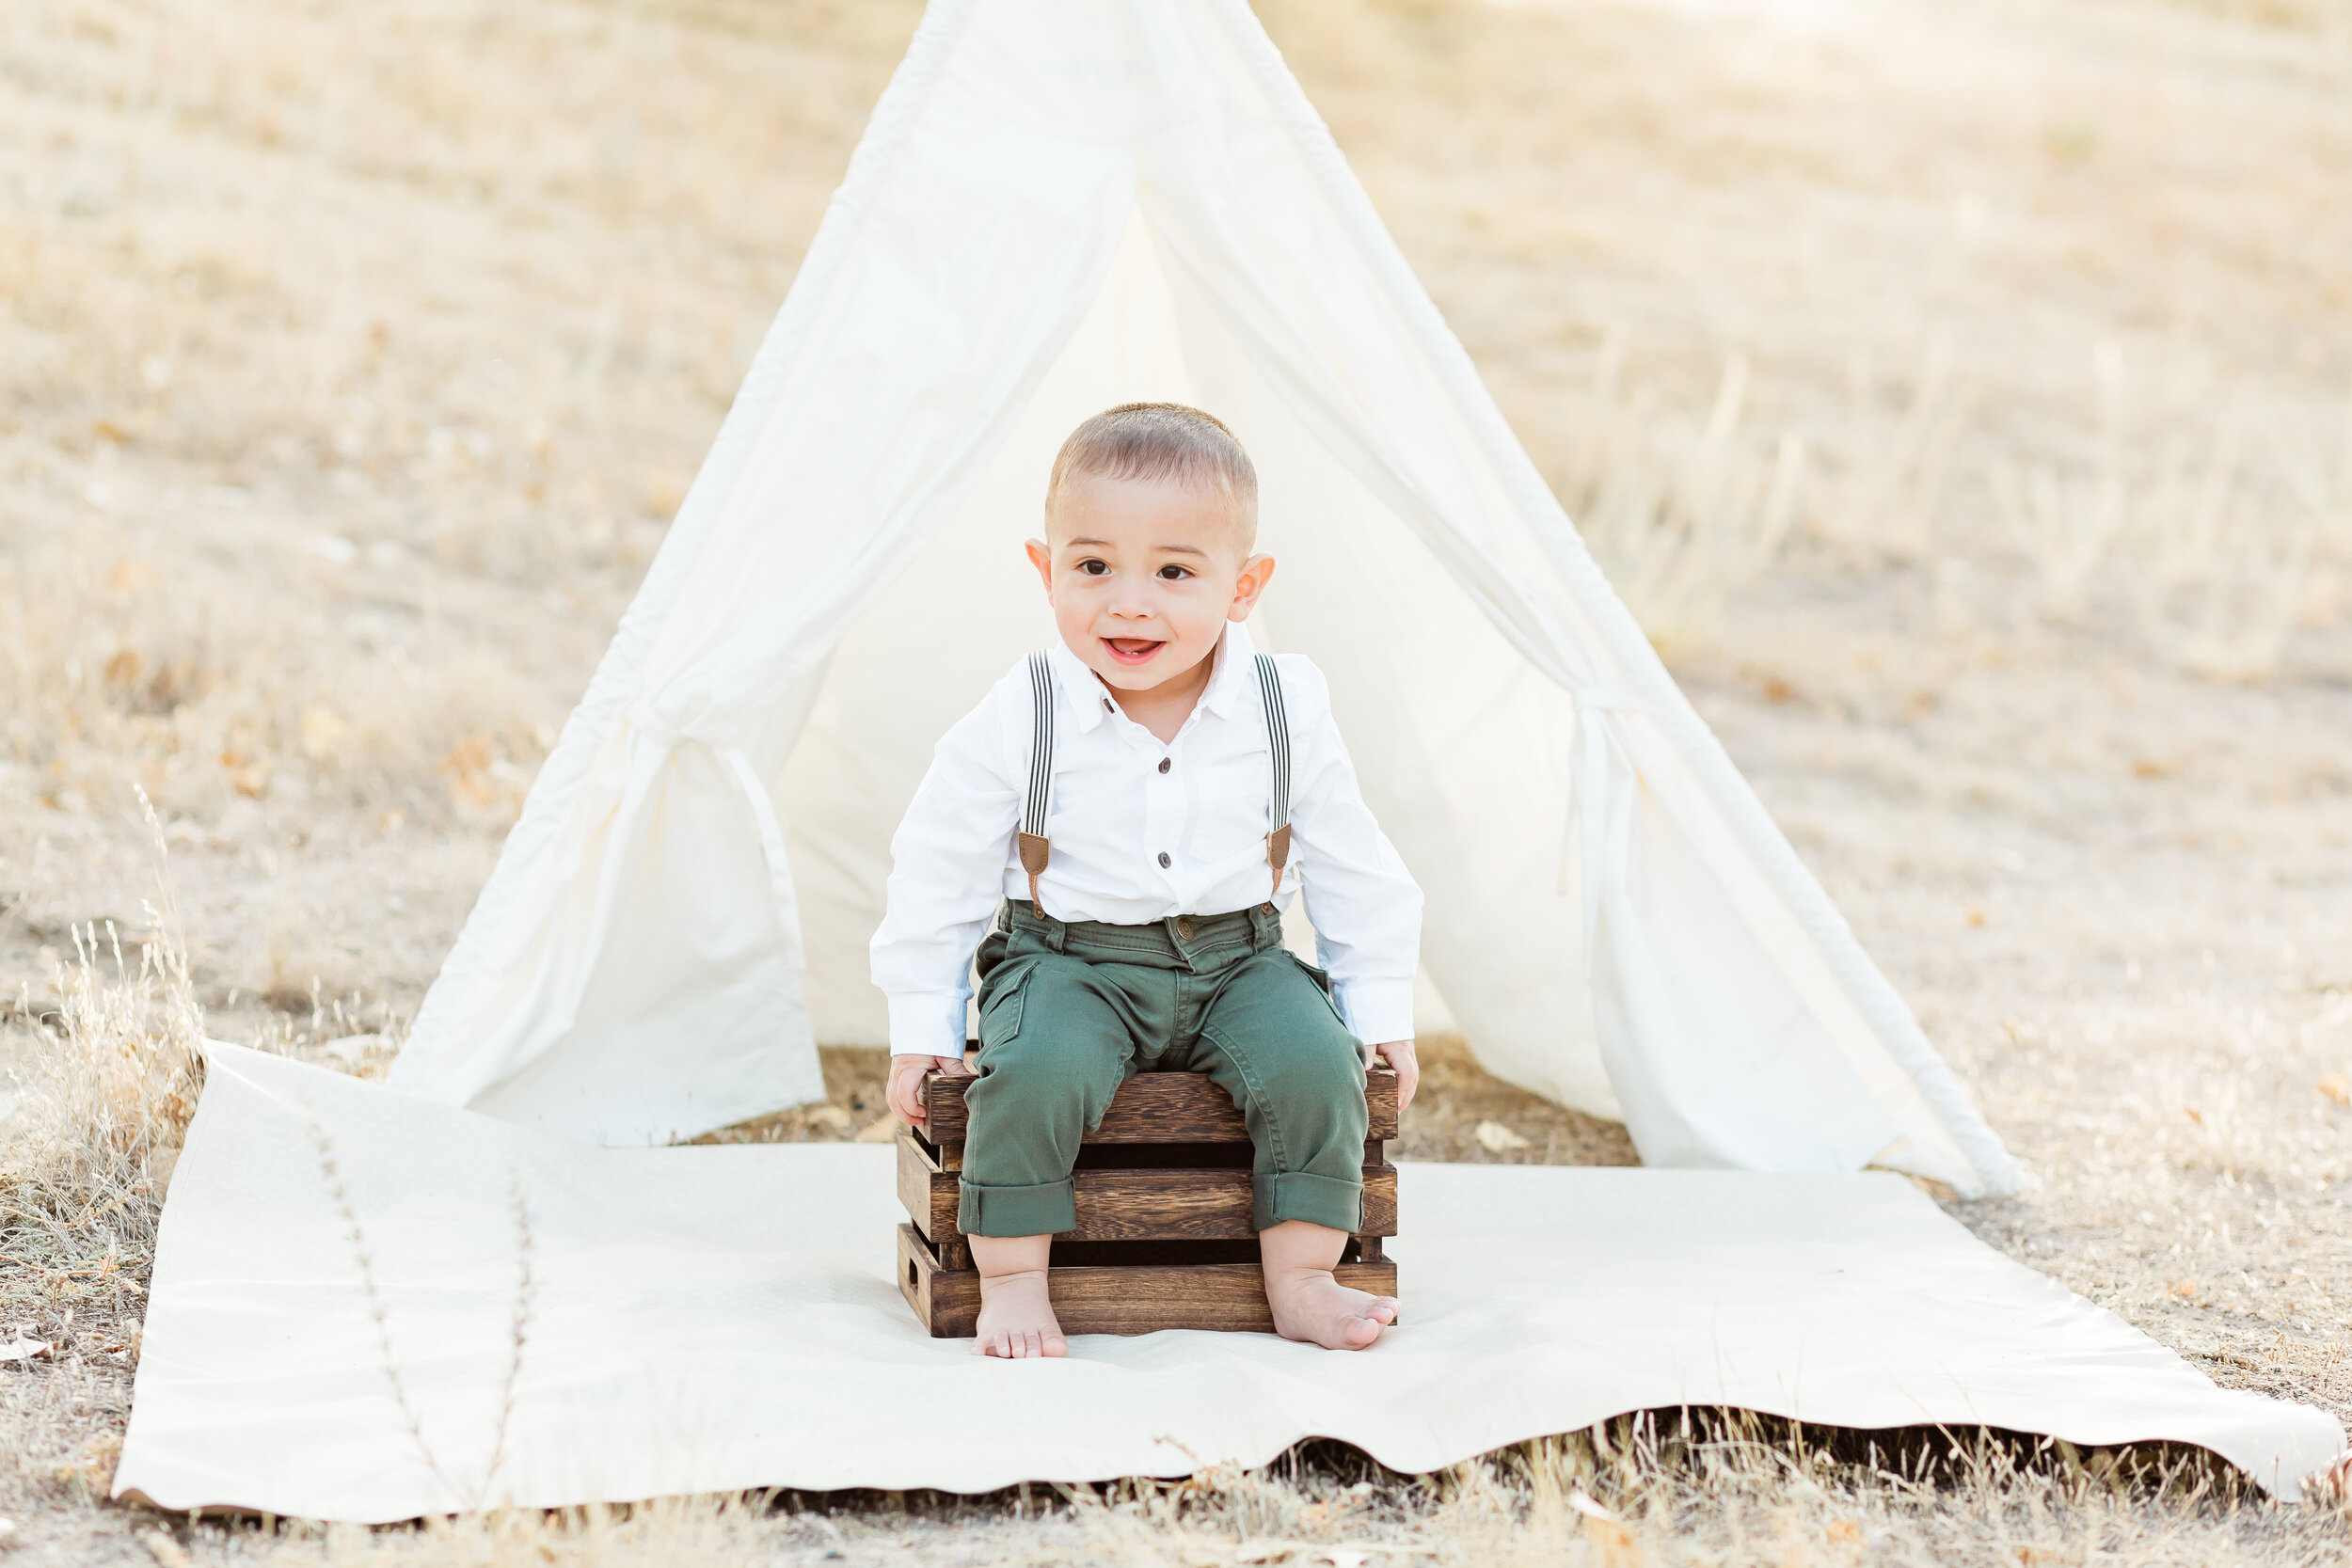 Cake Smash photo session, one year old boy wearing green pants and suspenders poses in front of a tee pee tent.